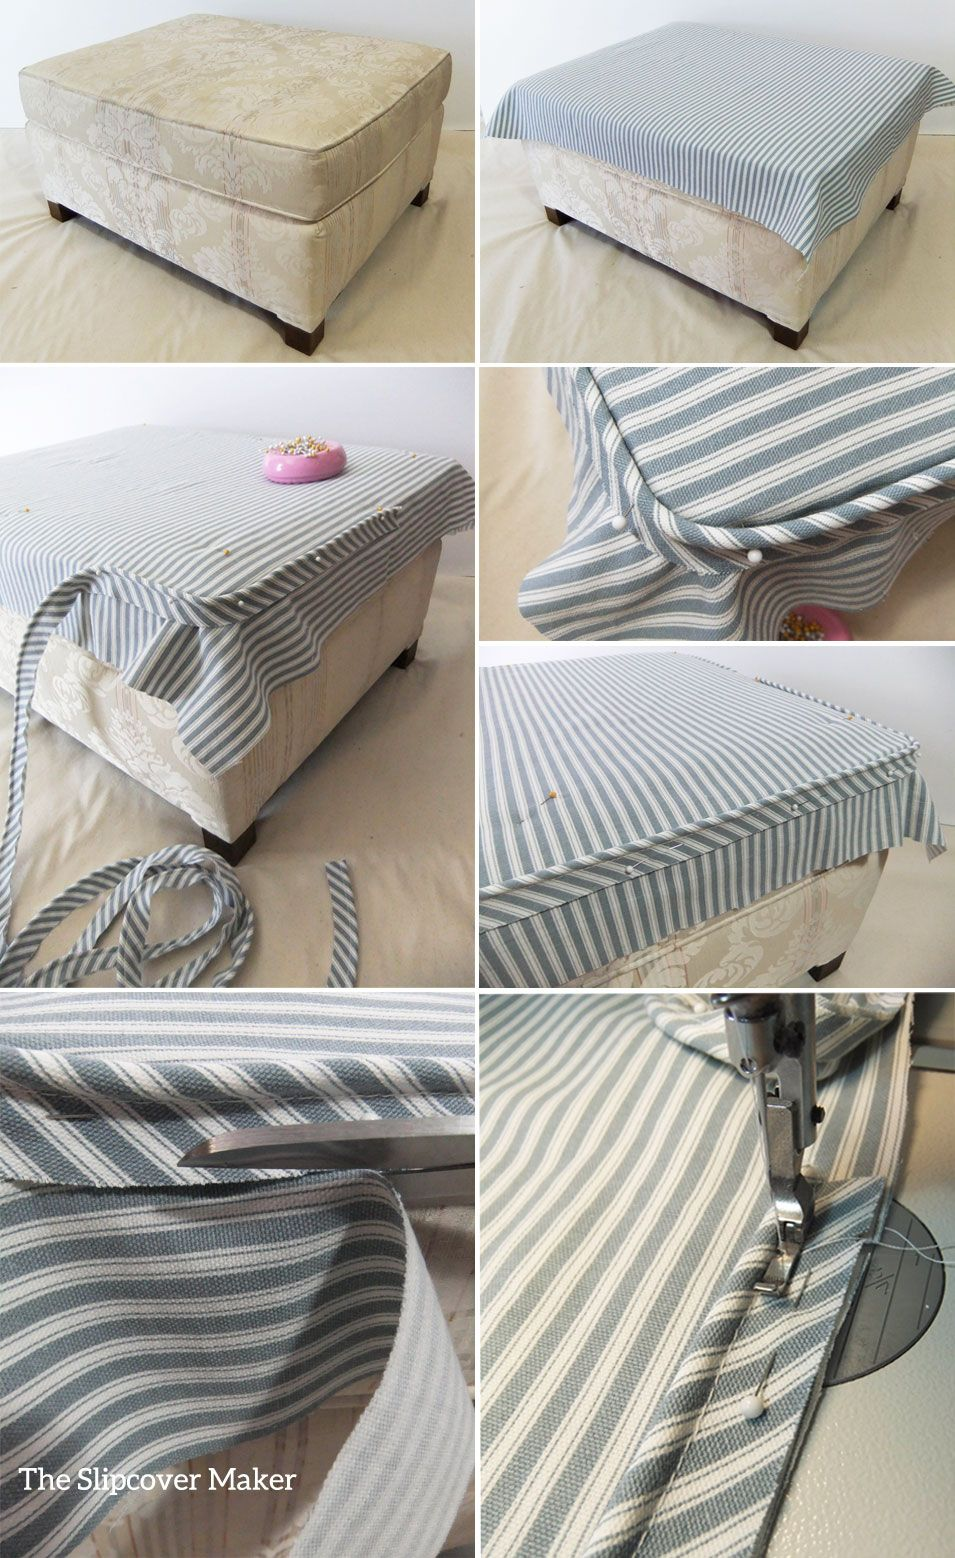 have you ever made an ottoman slipcover and the top fit too small even though your measurements were spot on did the welt cord ride up and pull away from